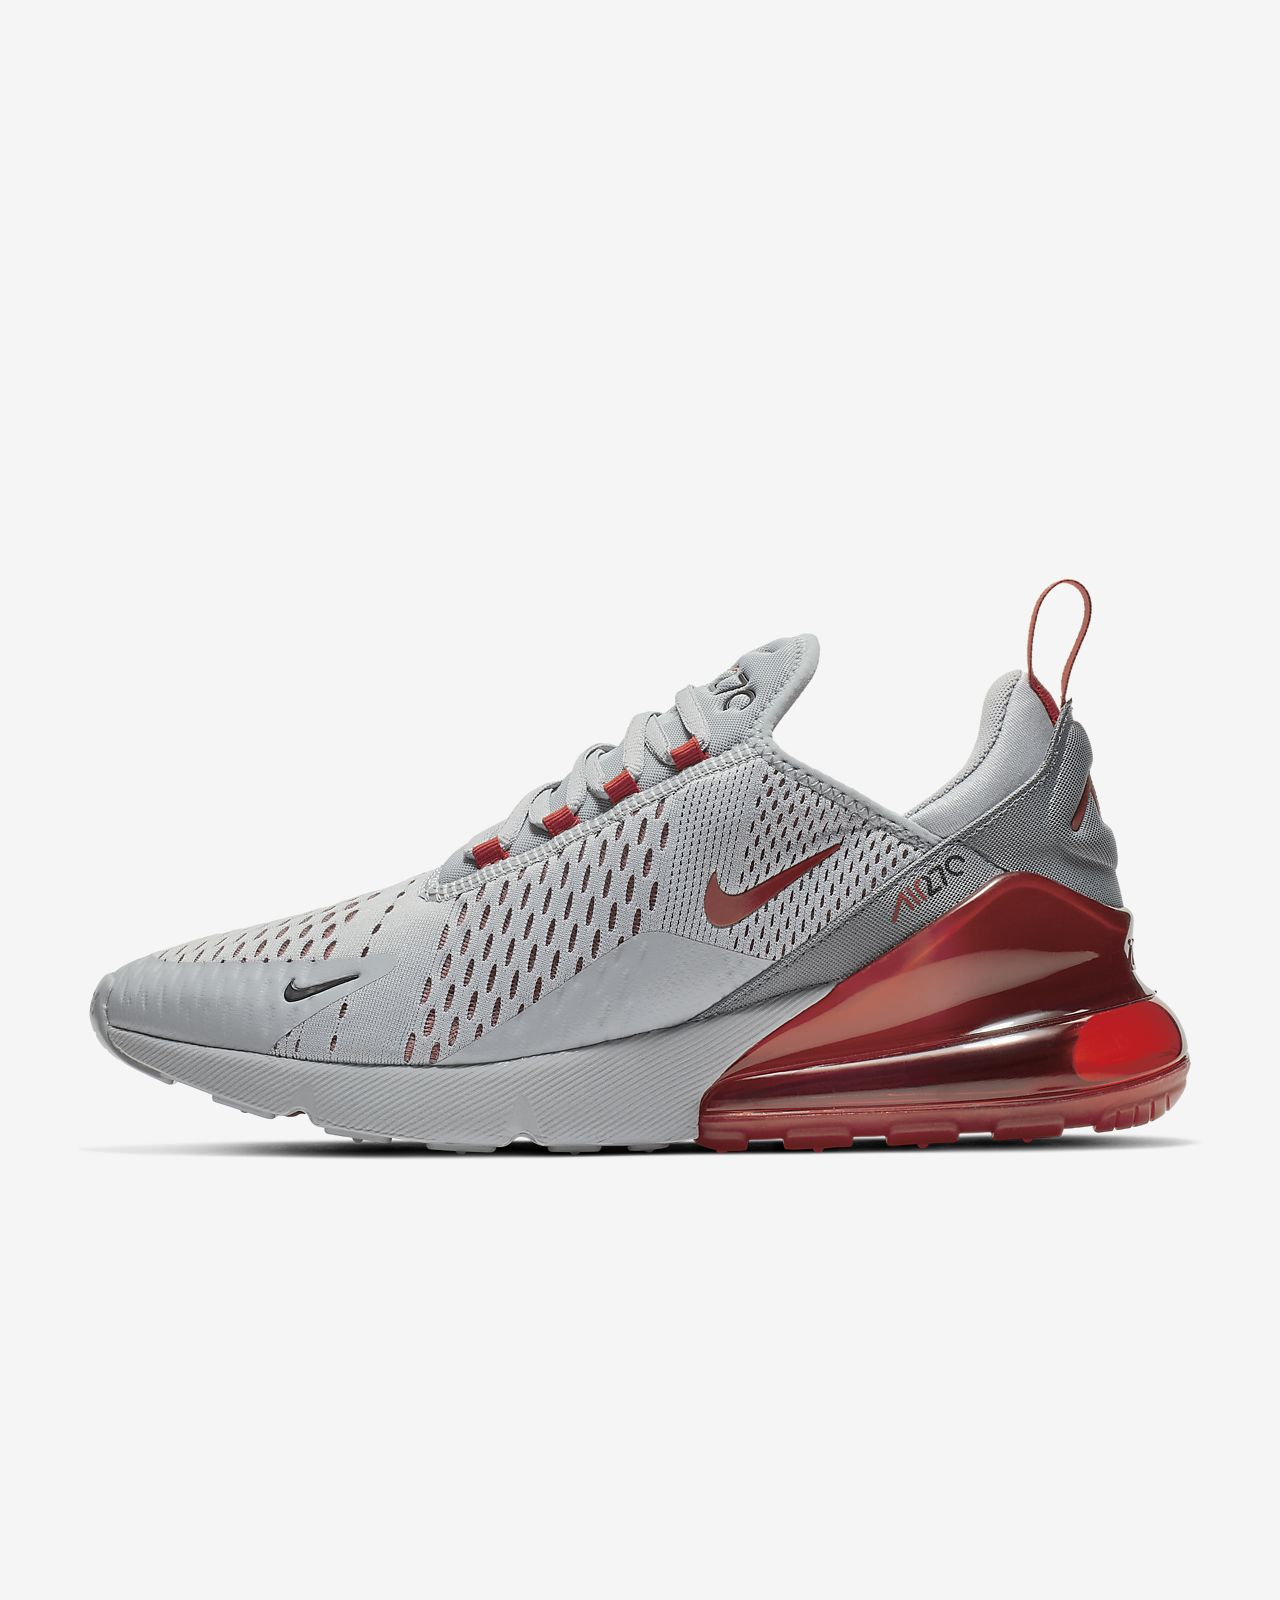 meet f5ce9 afd7d Men s Shoe. Nike Air Max 270